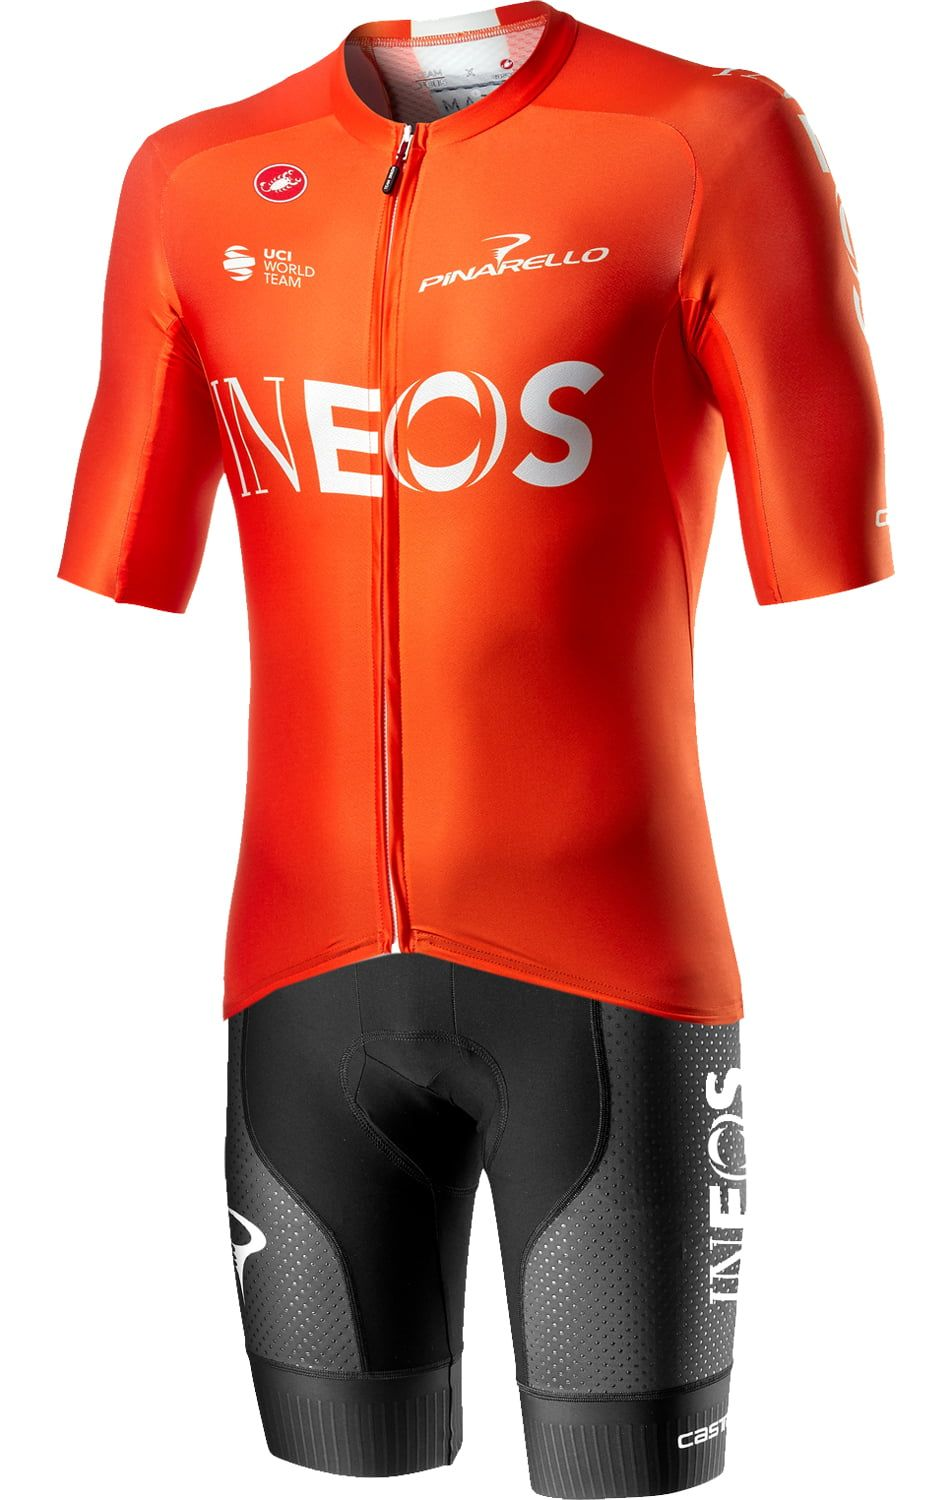 Fahrradbekleidung Radsport 2020 TEAM INEOS Aero Set training edition AERO RACE 6.0 Trikot Kurzarm Outlet + FREE AERO RA